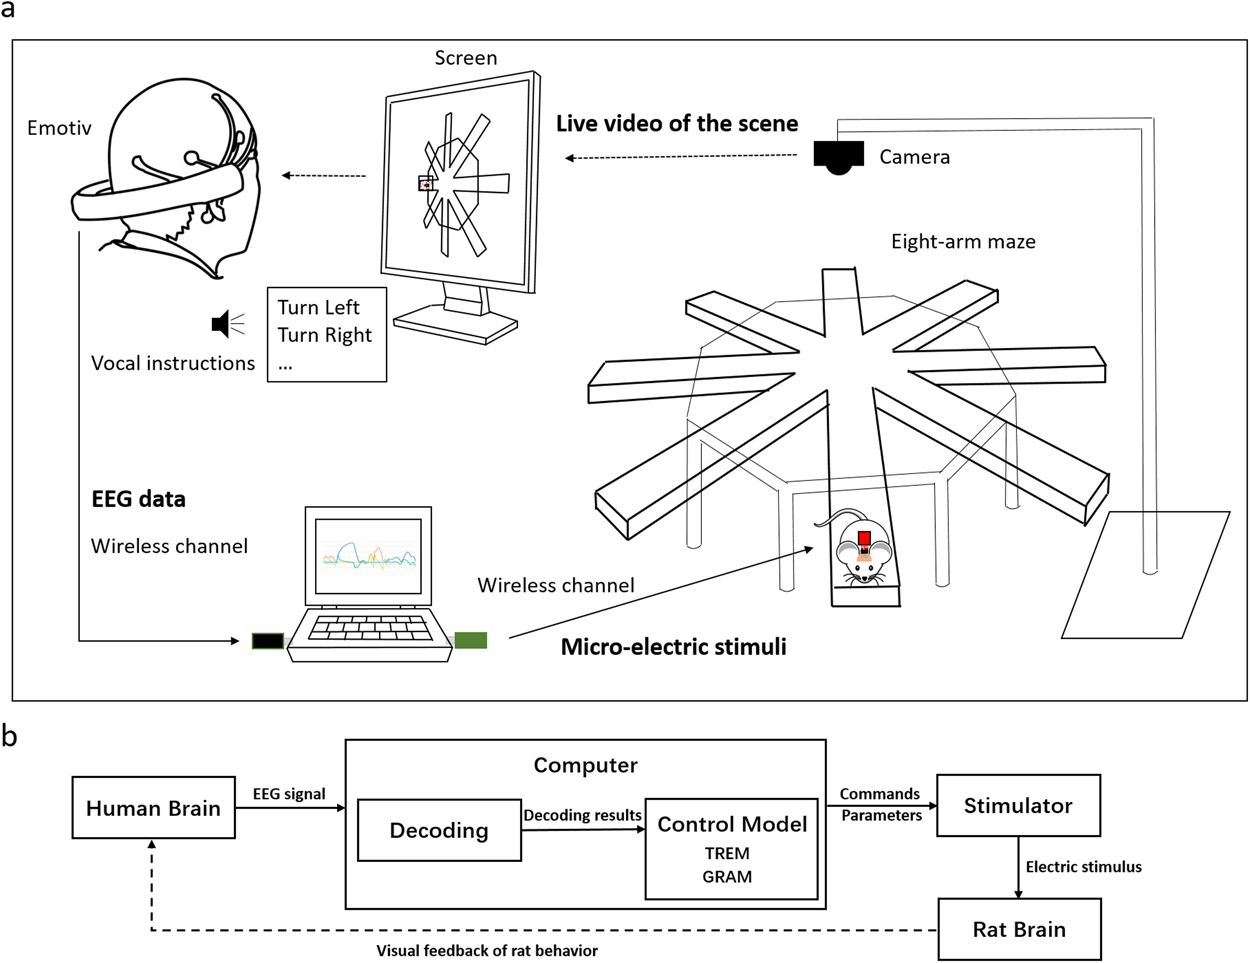 Human Mind Control of Rat Cyborg's Continuous Locomotion